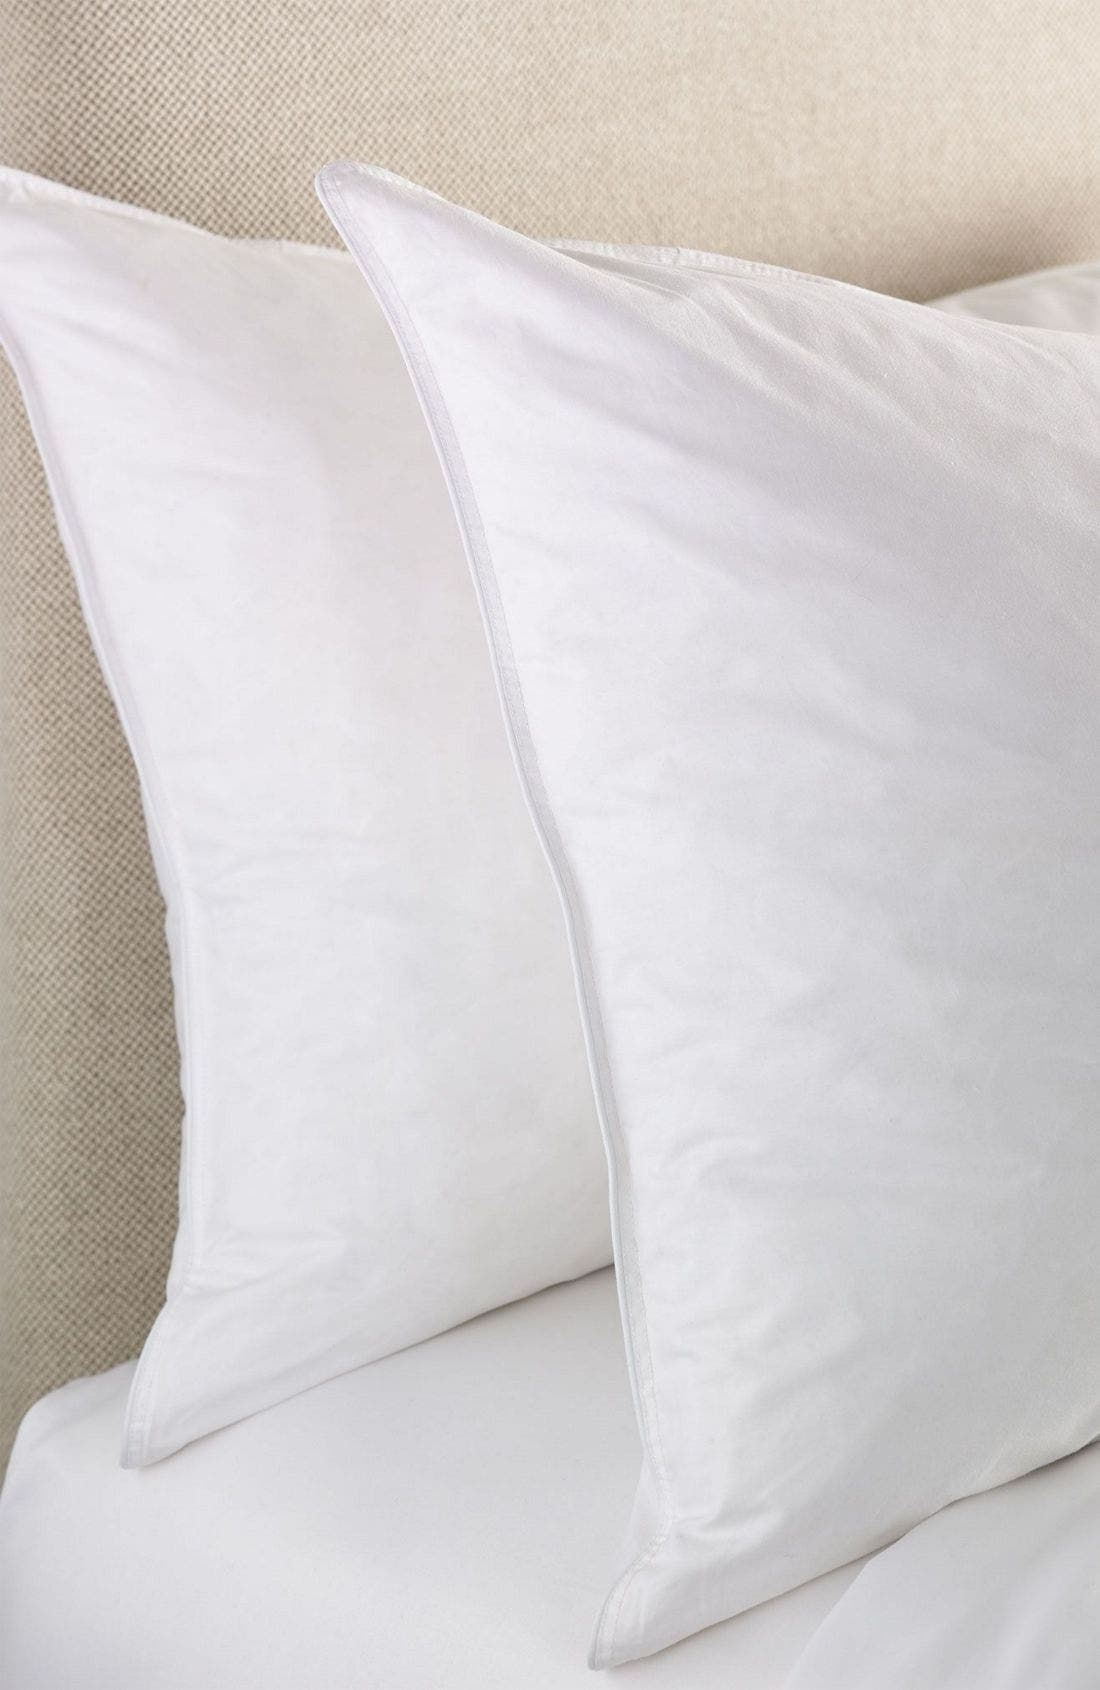 Feather & Down Pillow,                             Alternate thumbnail 2, color,                             WHI